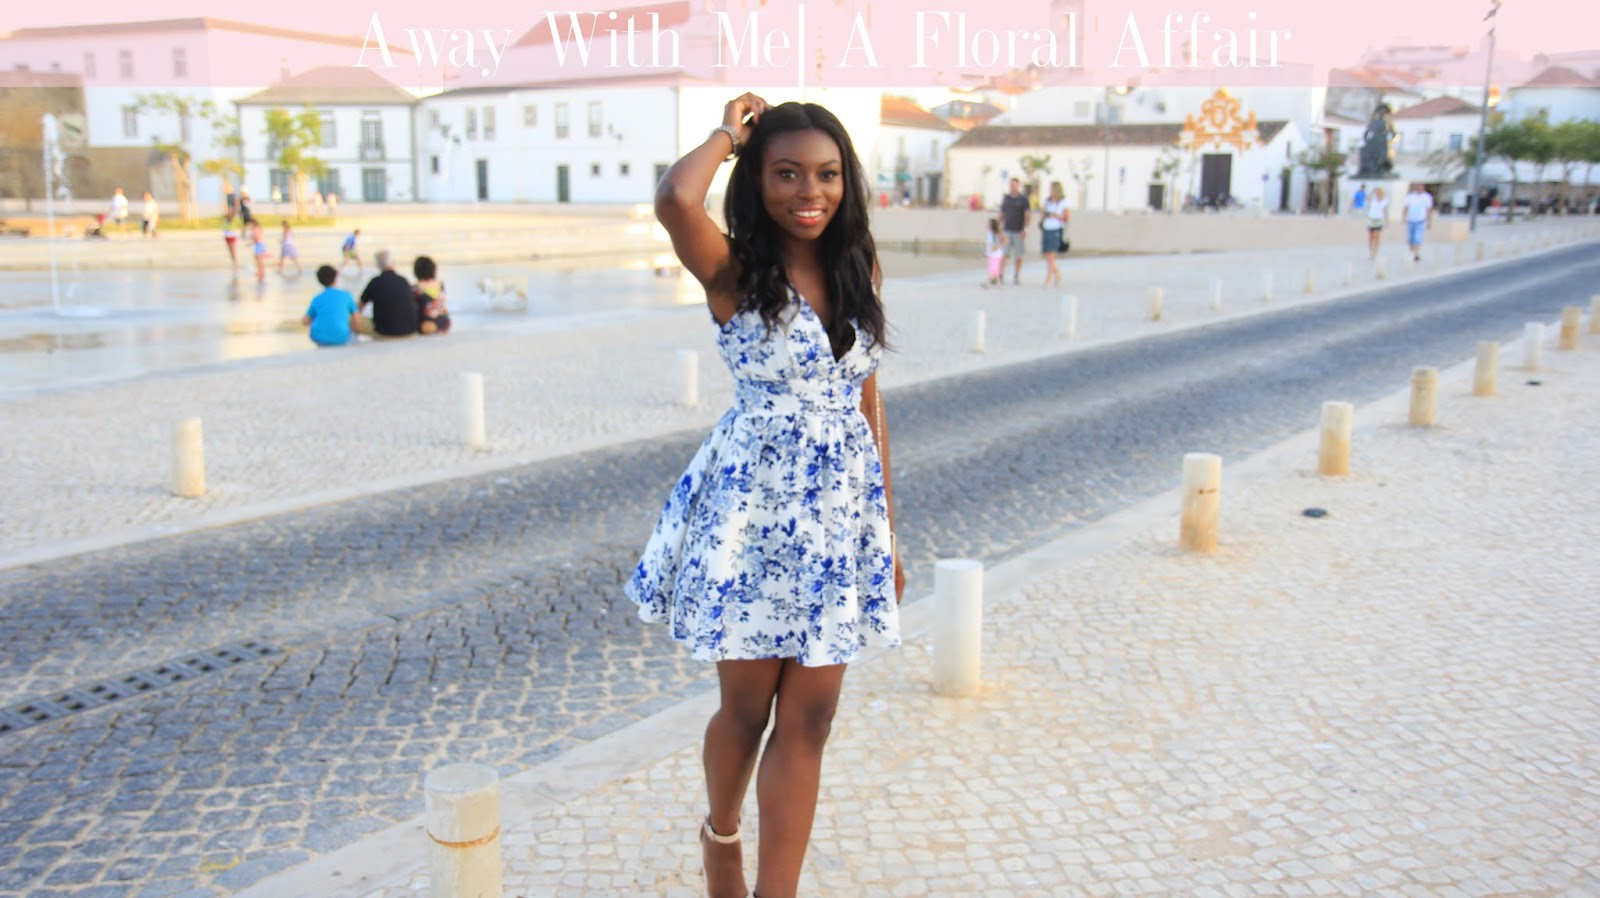 Away With Me| A Floral Affair